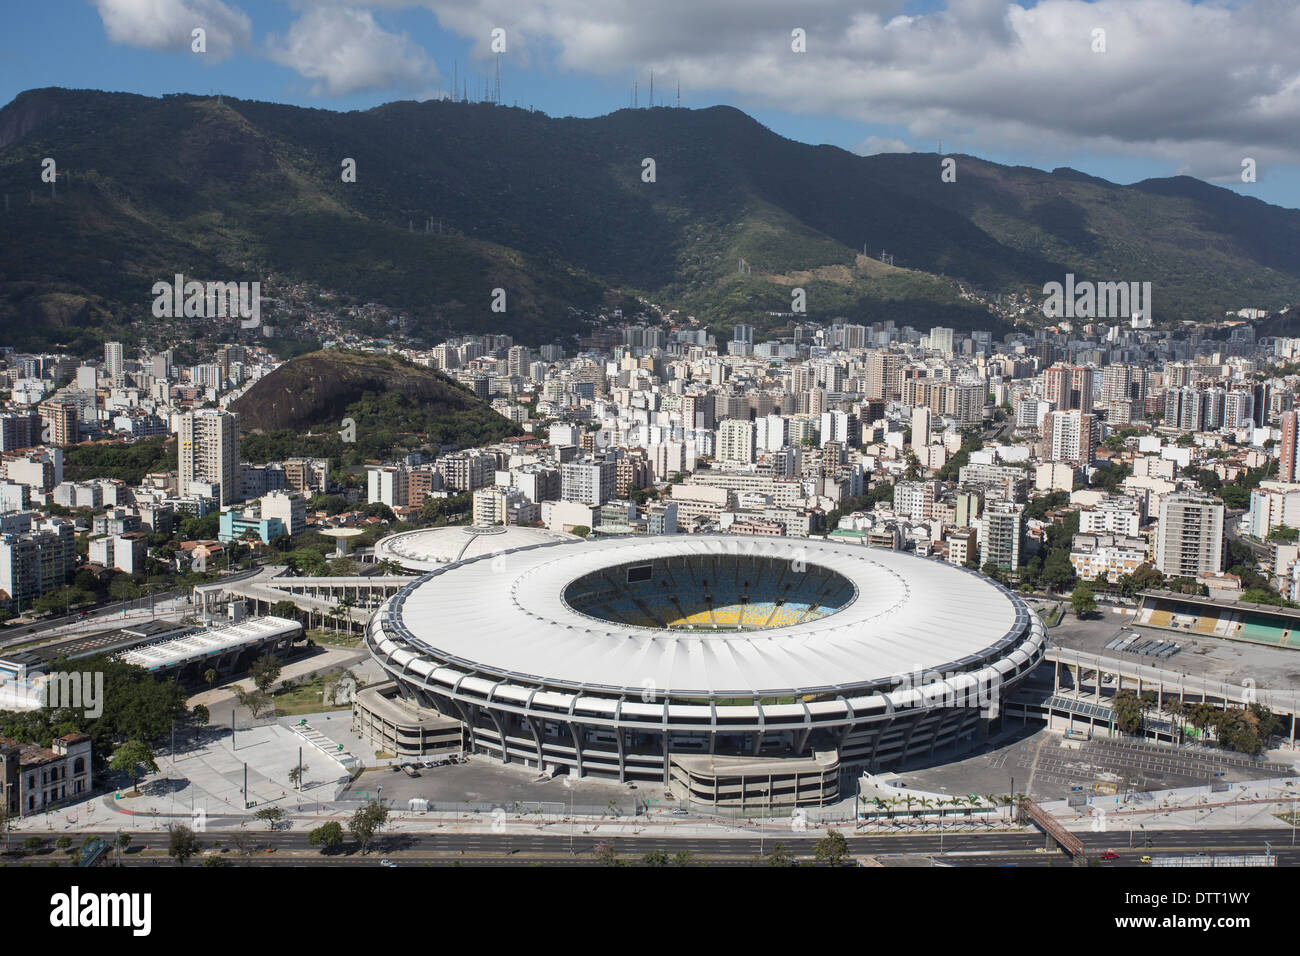 Aerial view of Maracana national stadium in Rio de Janeiro, which will host the World Cup final 2014 in Brazil - Stock Image